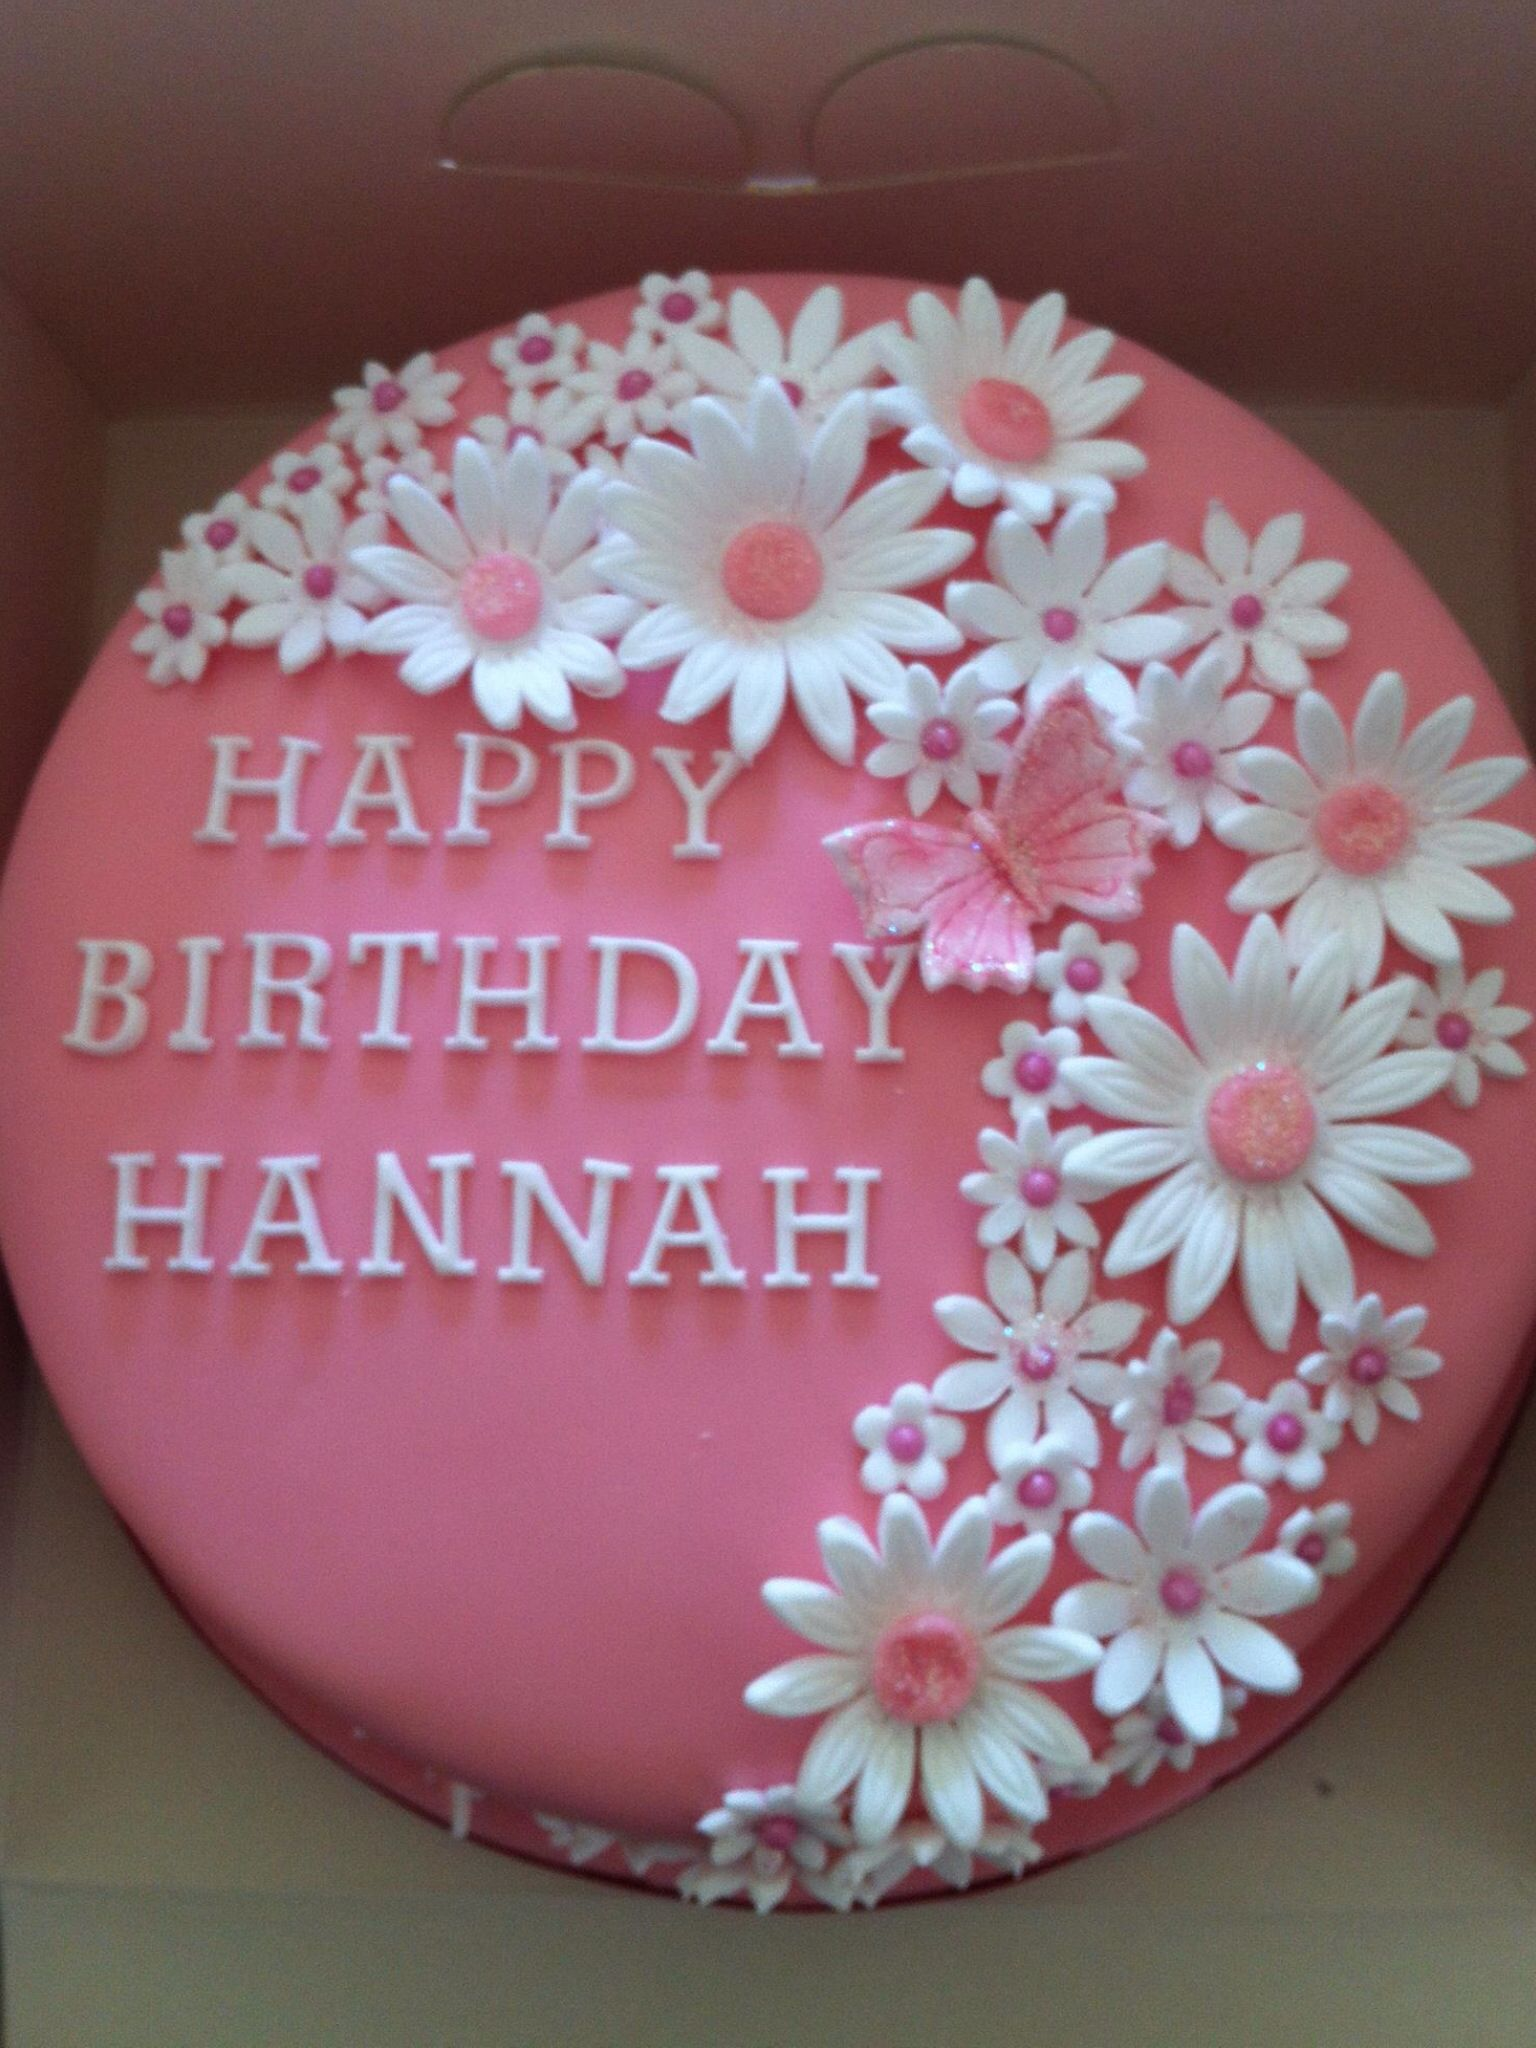 This Pretty Pink Flower Birthday Cake Is What Zoey Wants For Her